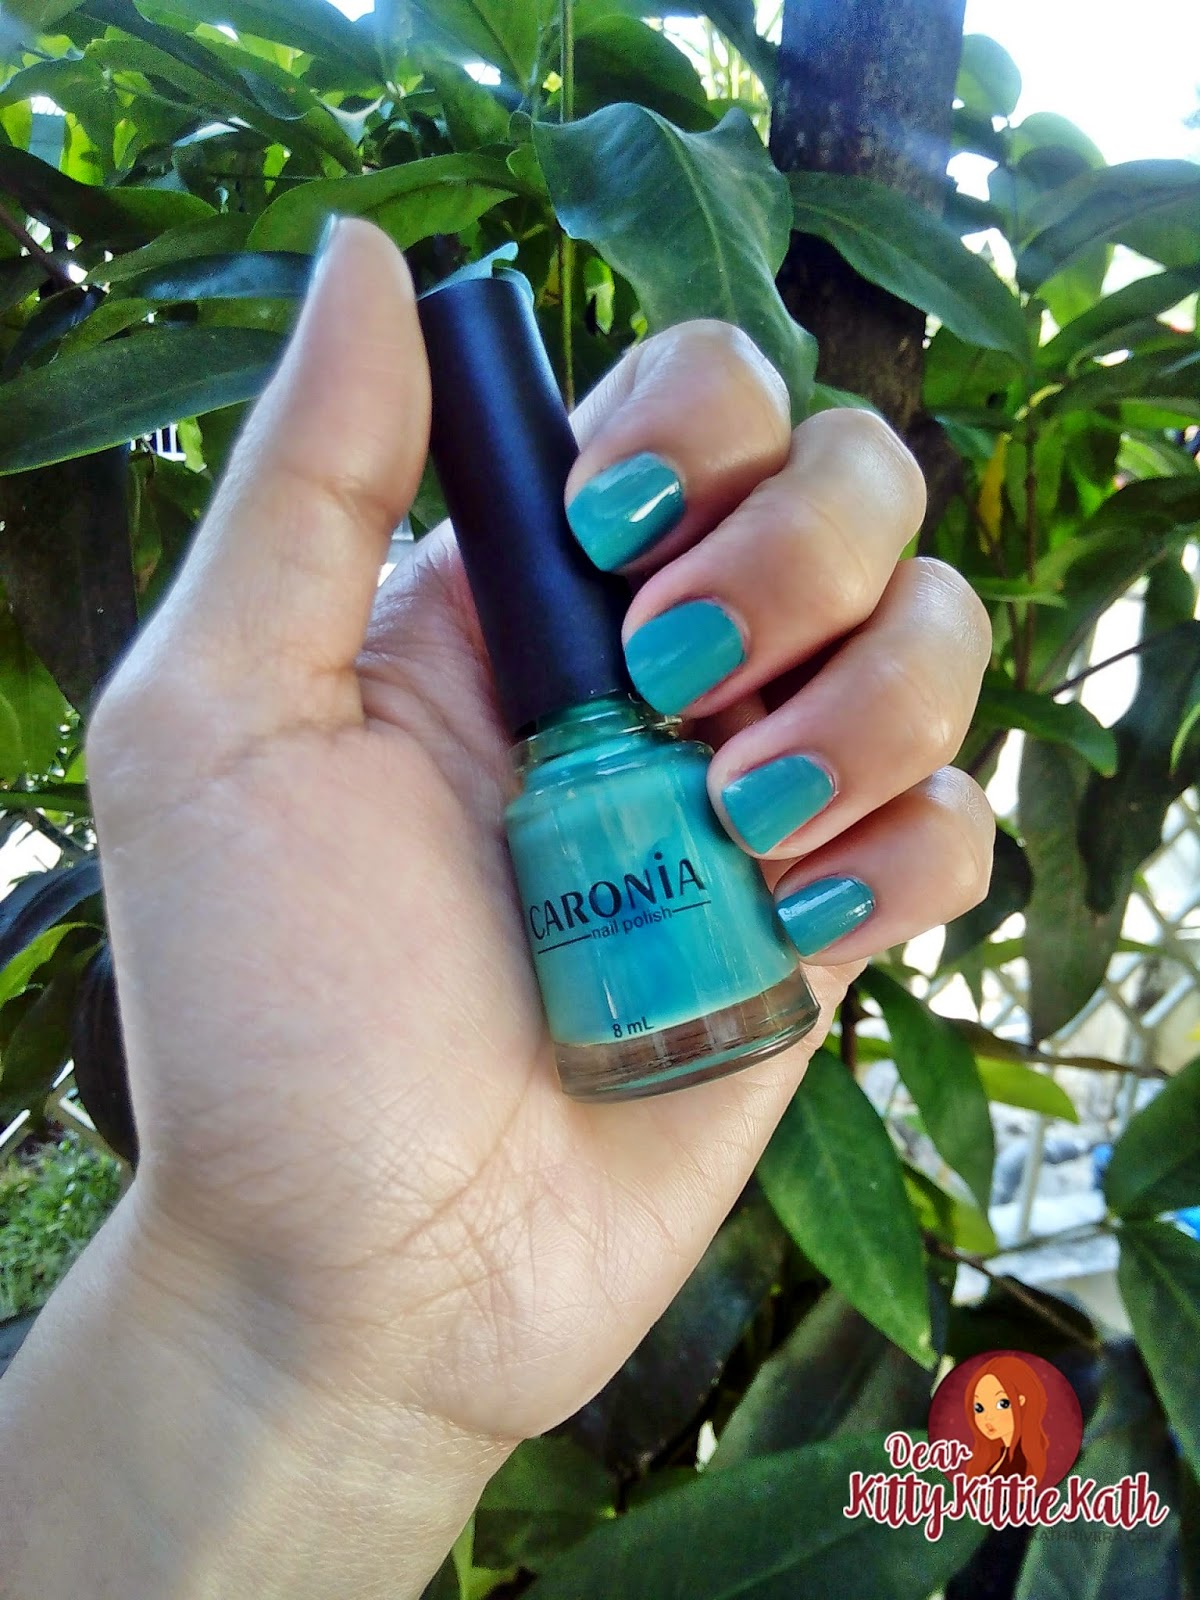 Caronia Nail Polish In On The Go